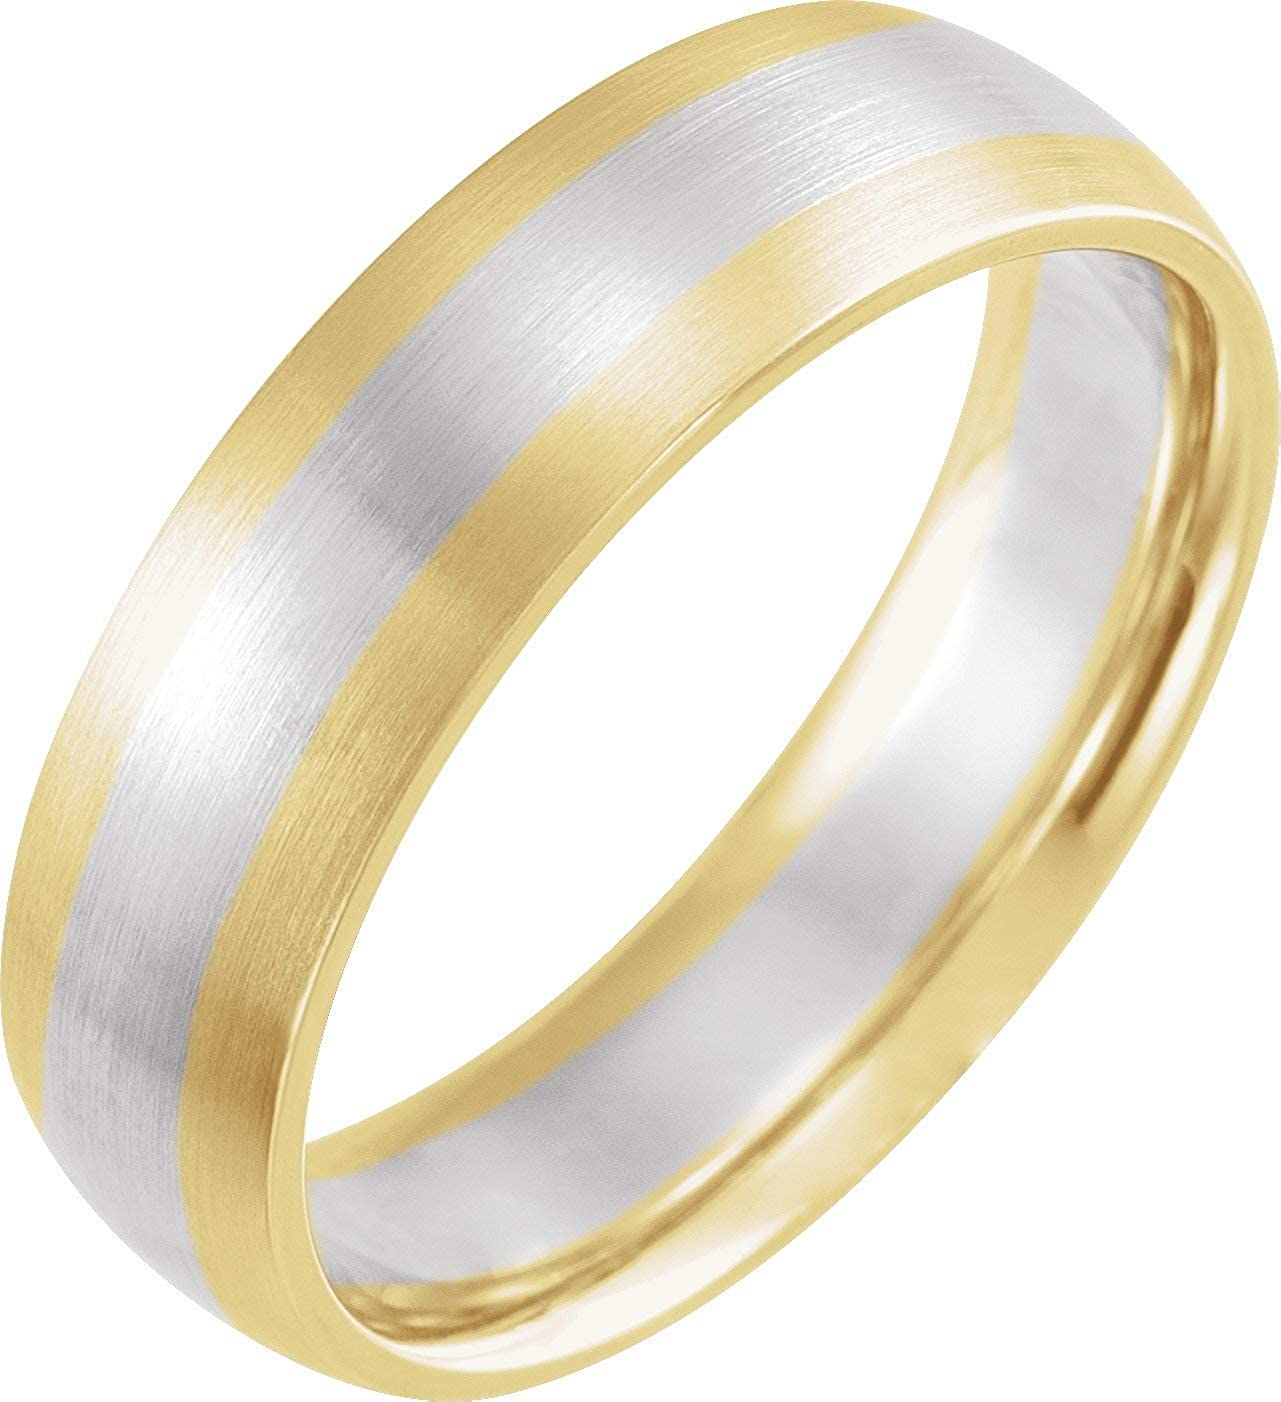 6 mm Half Round Band with Satin Finish Solid 14K Rose/White/Yellow Gold